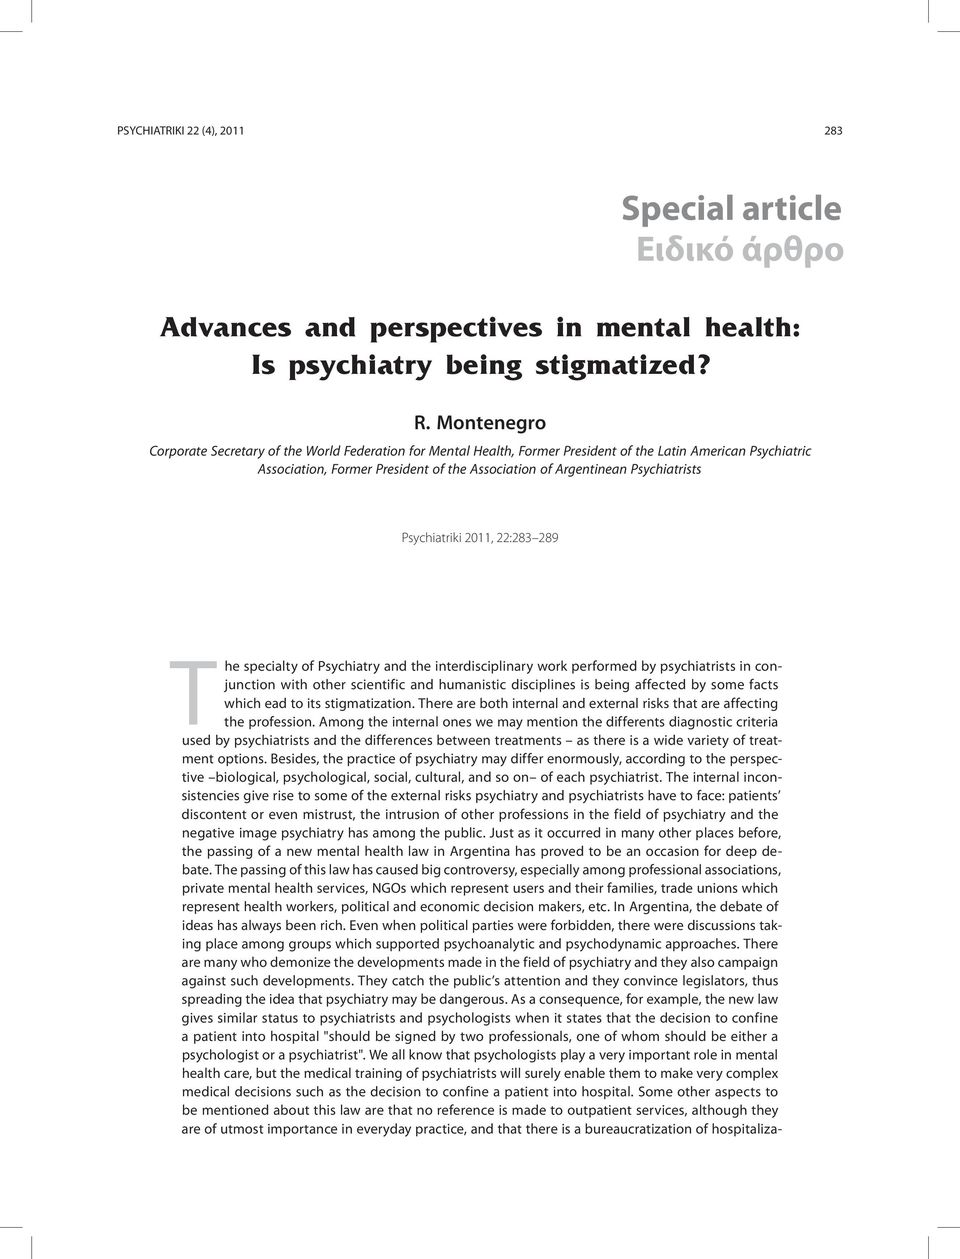 Psychiatrists Psychiatriki 2011, 22:283 289 The specialty of Psychiatry and the interdisciplinary work performed by psychiatrists in conjunction with other scientific and humanistic disciplines is